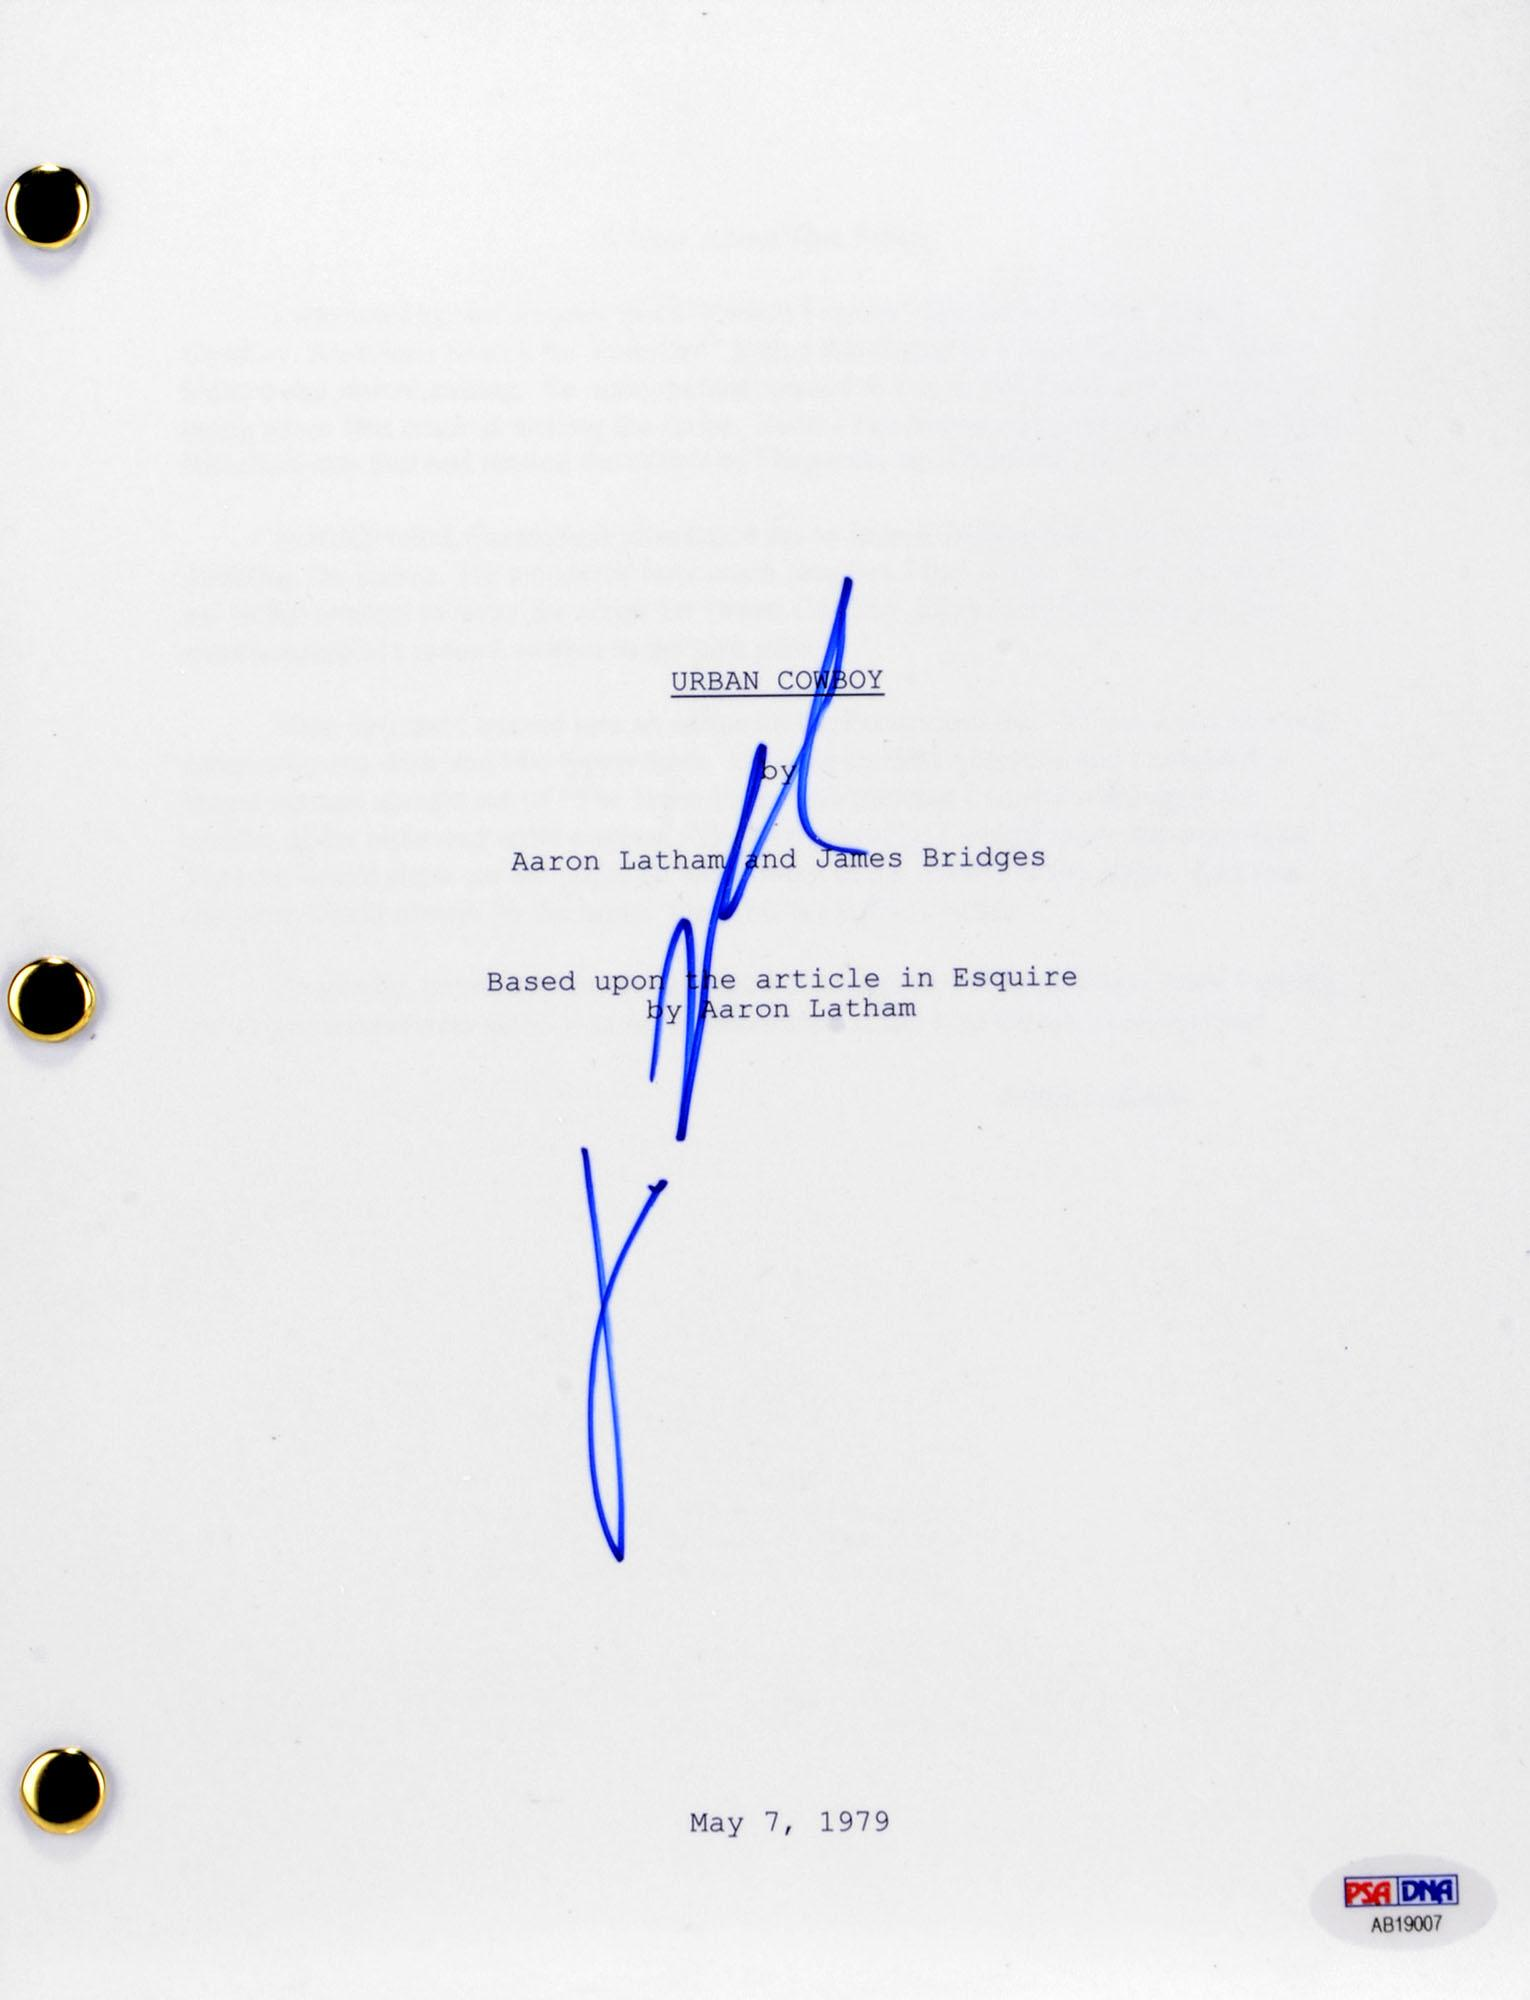 John Travolta Autographed Urban Cowboy Replica Movie Script- PSA/DNA